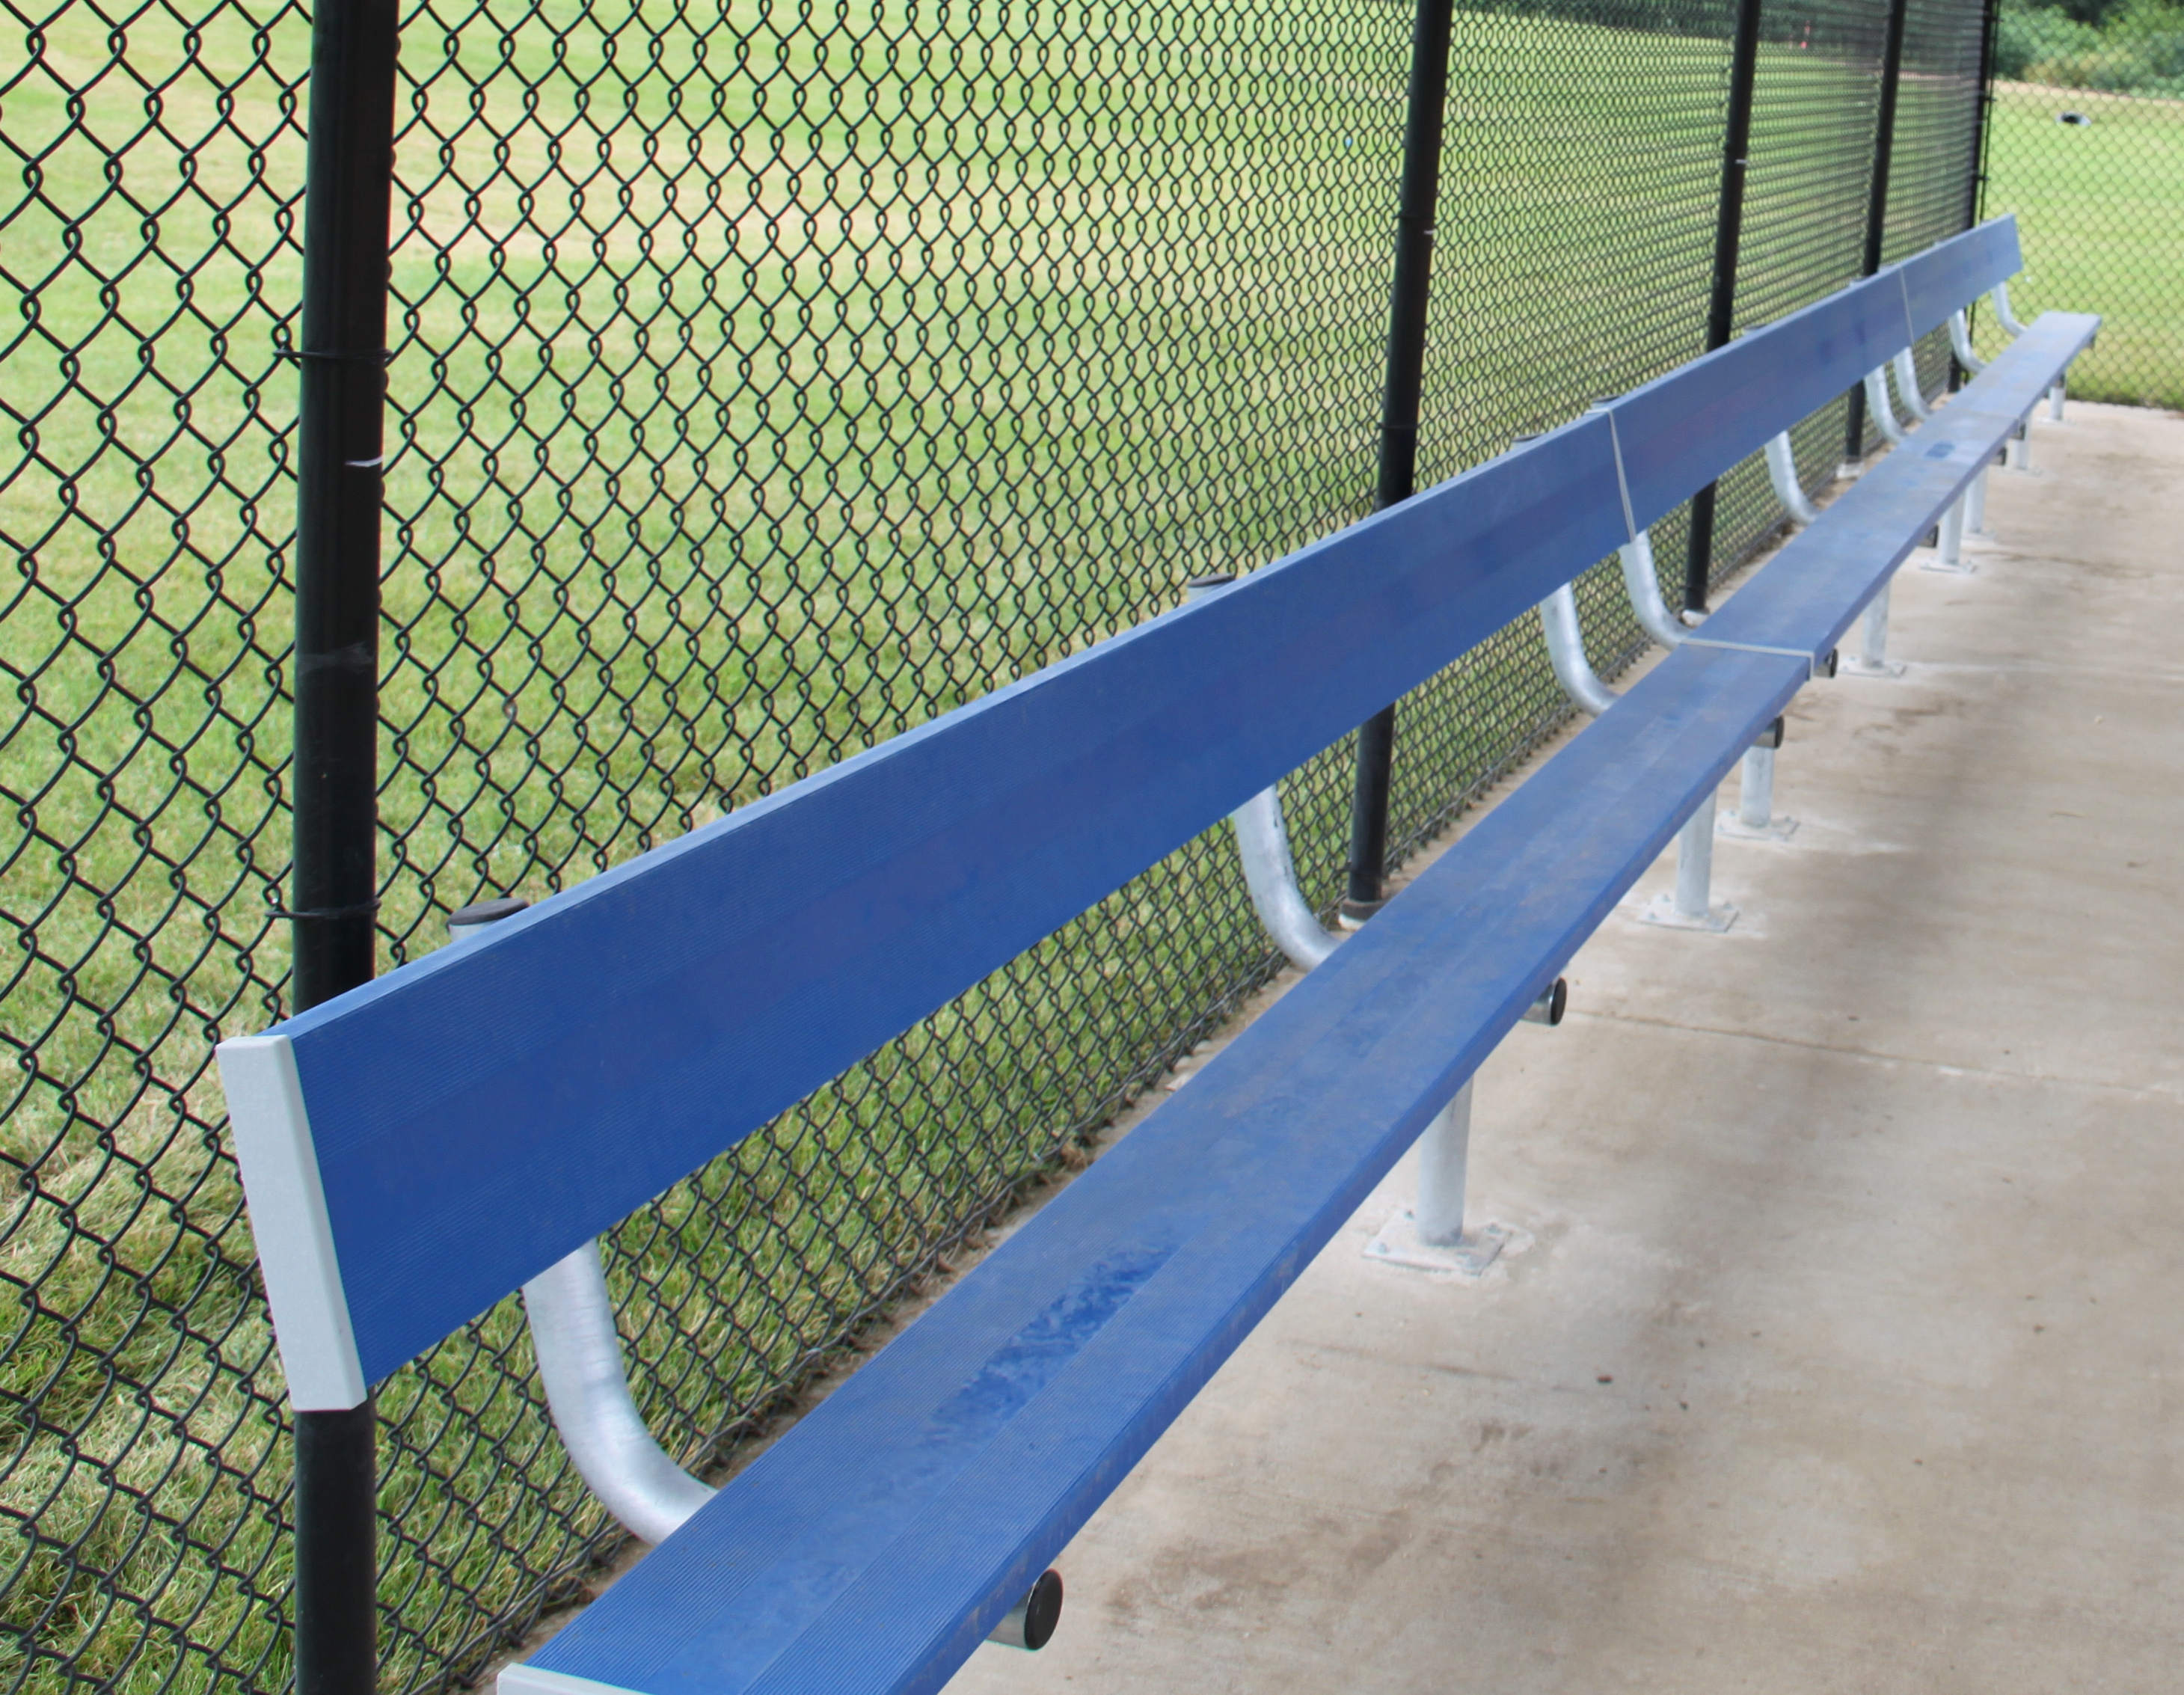 player bench with backrest